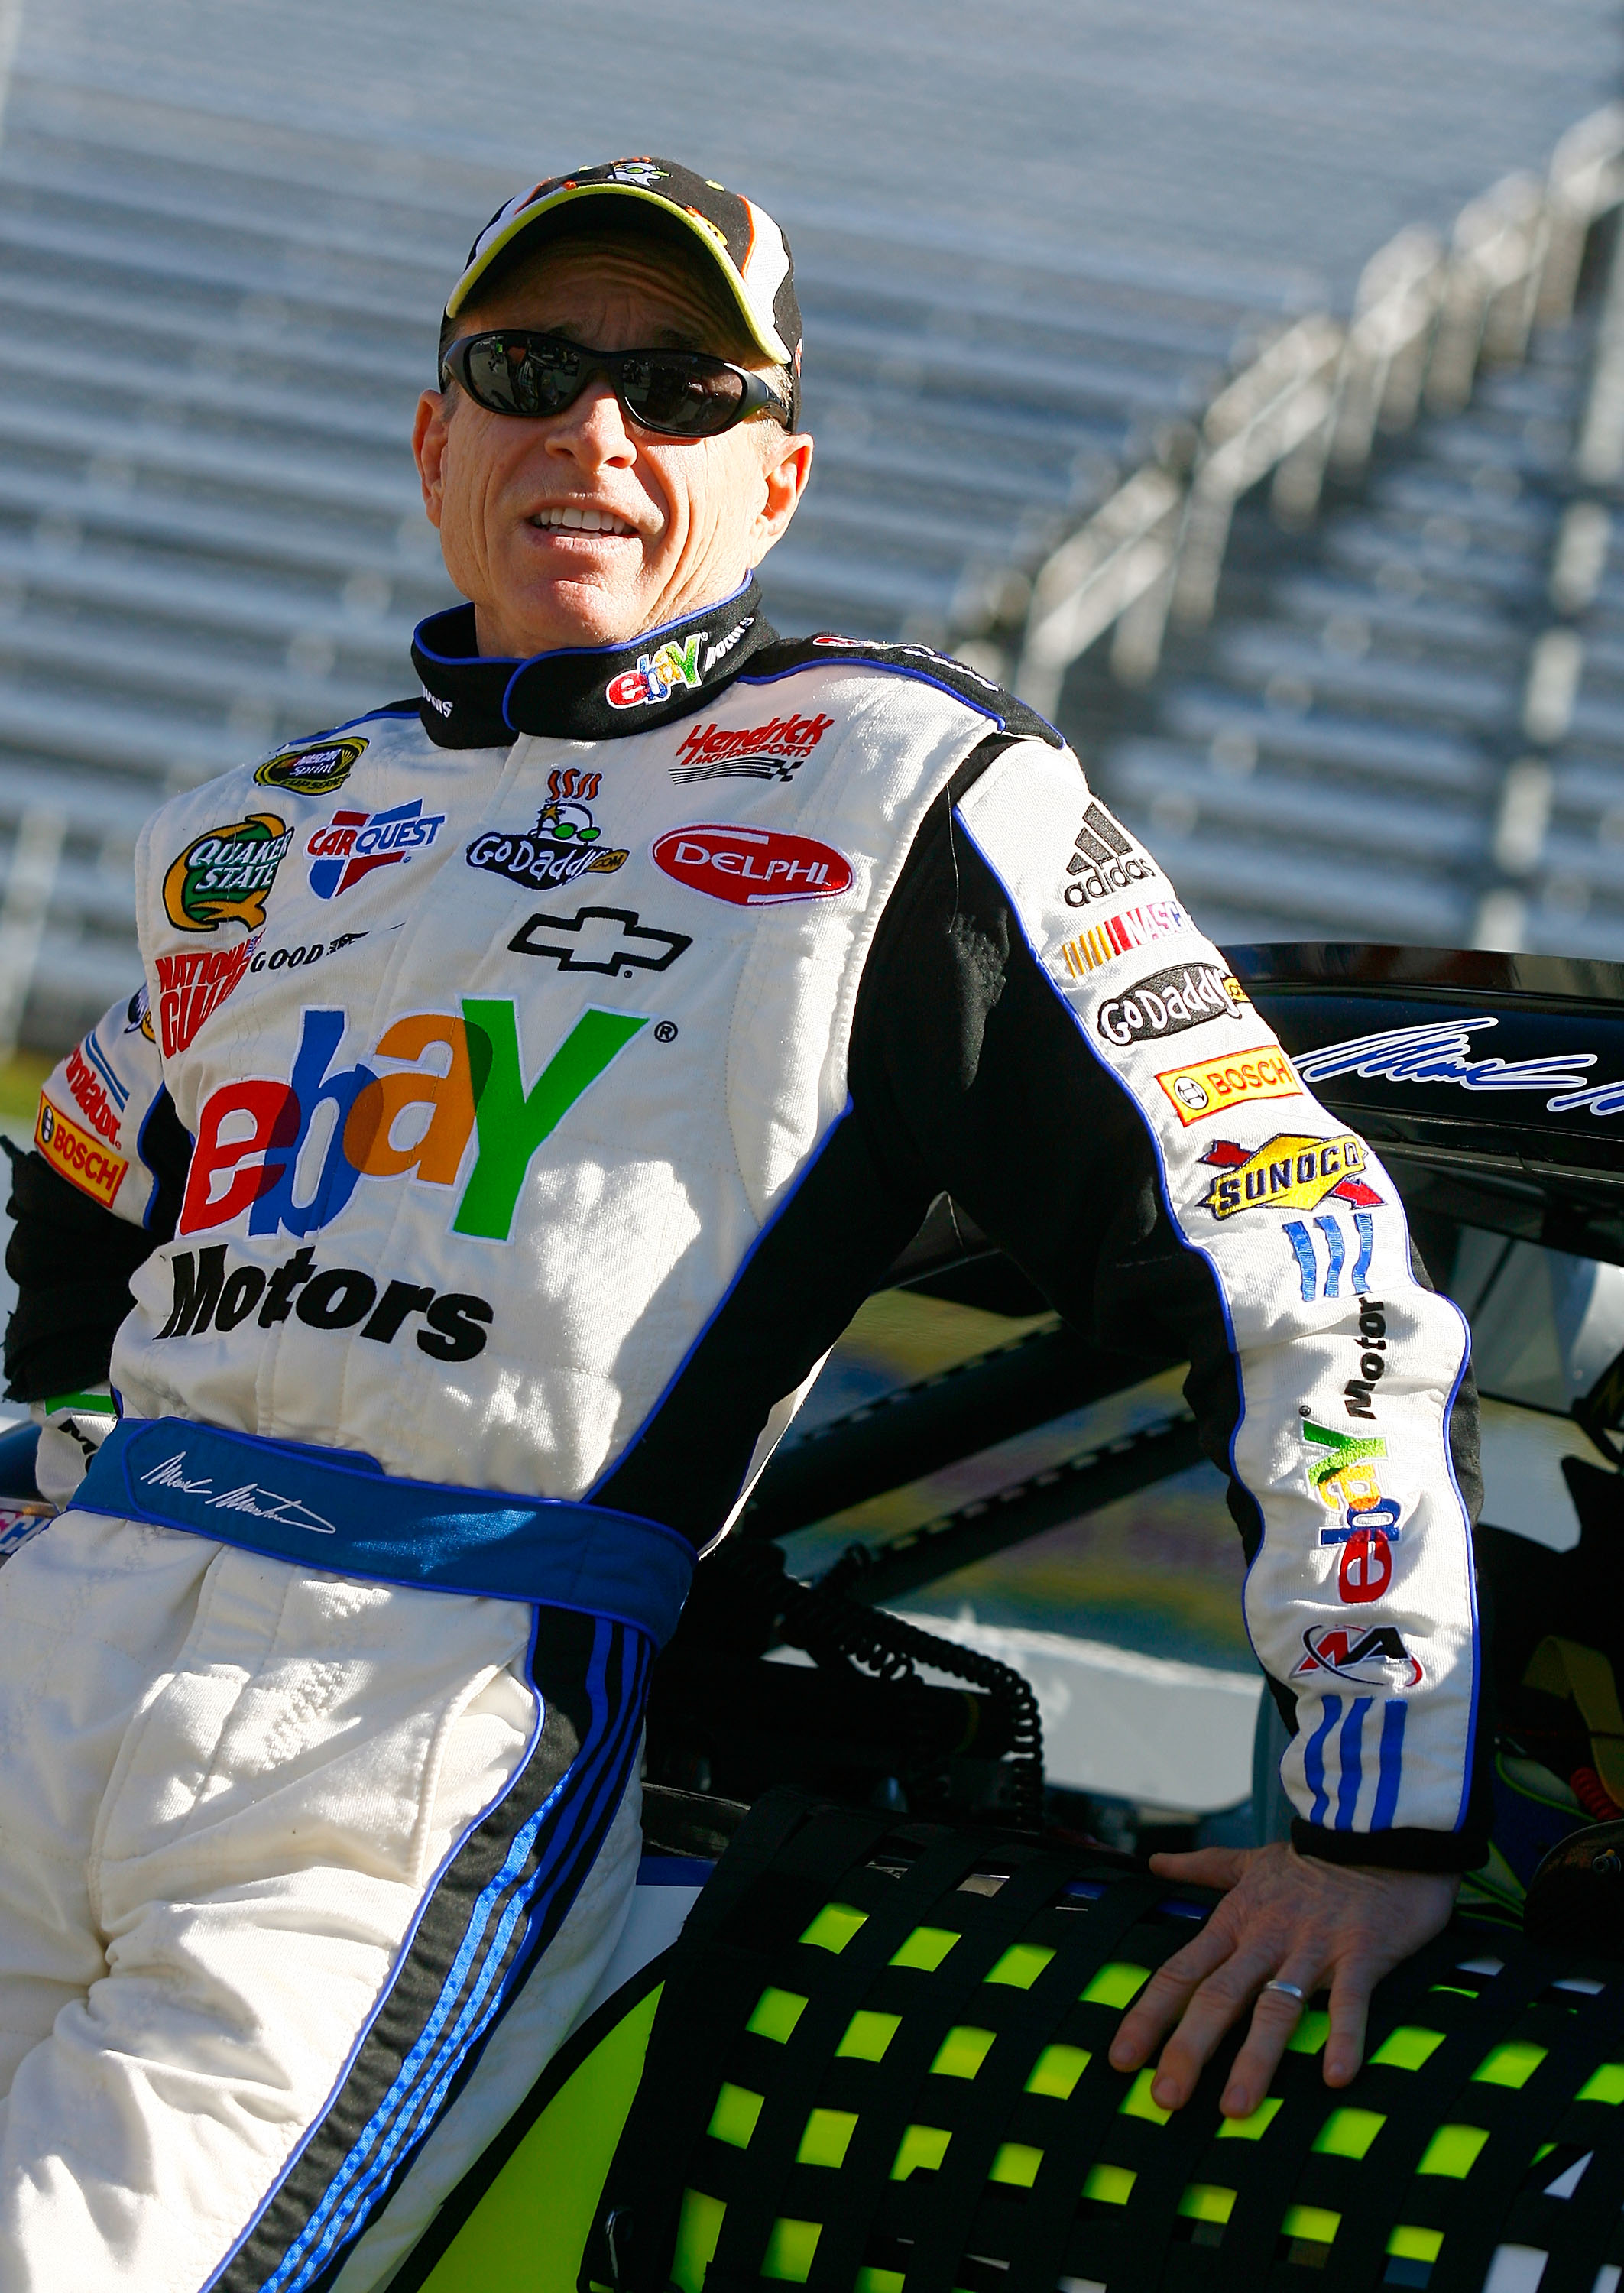 MARTINSVILLE, VA - OCTOBER 22:  Mark Martin, driver of the #5 ebay Motors/GoDaddy.com Chevrolet, stands next to his car on pit road during qualifying for the NASCAR Sprint Cup Series TUMS Fast Relief 500 at Martinsville Speedway on October 22, 2010 in Mar